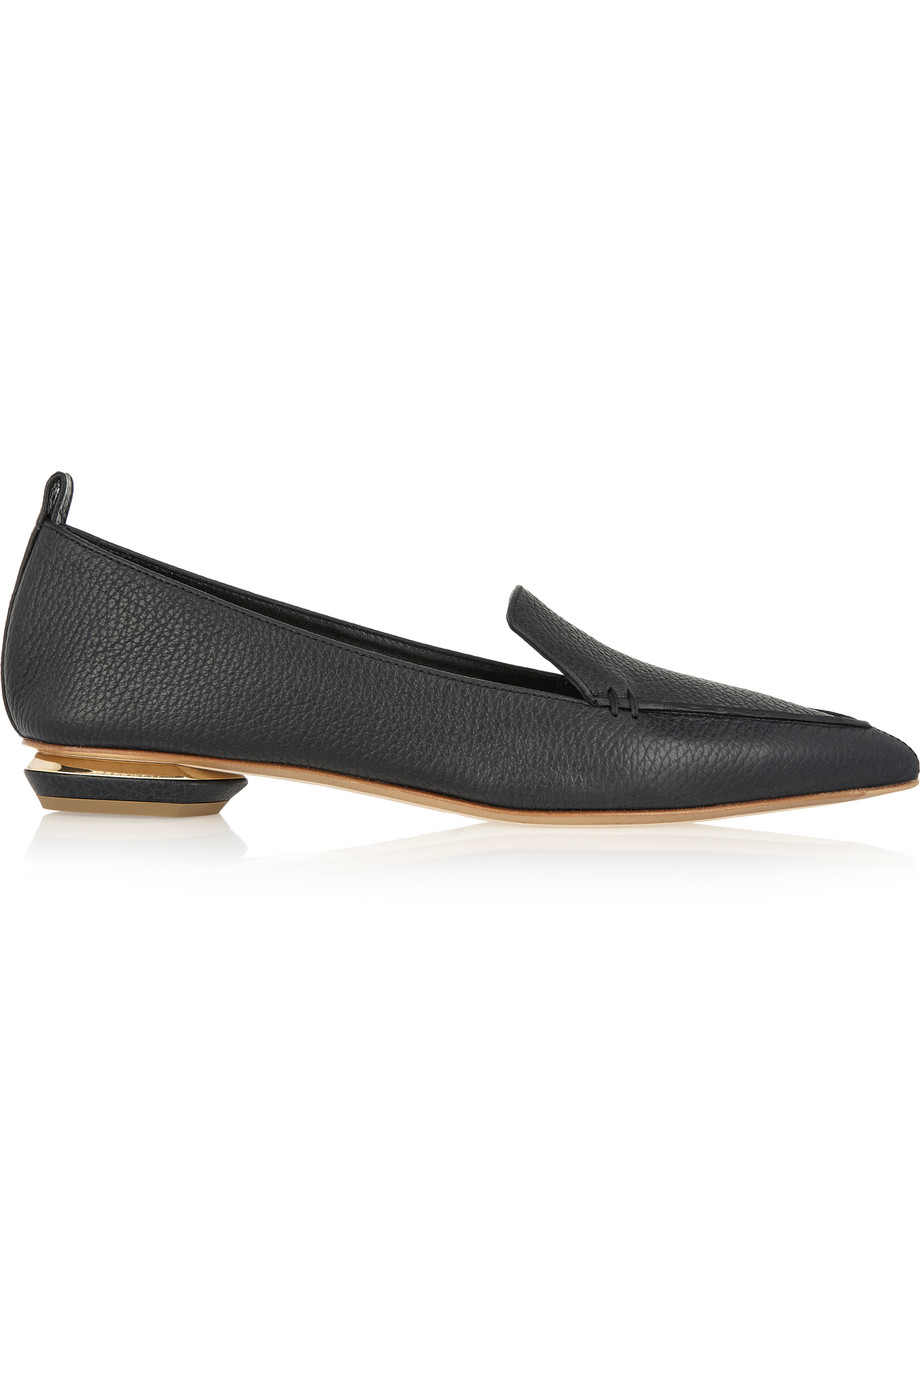 Beya Textured-Leather Point-Toe Flats, Nicholas Kirkwood, Black, Women's US Size: 6, Size: 36.5